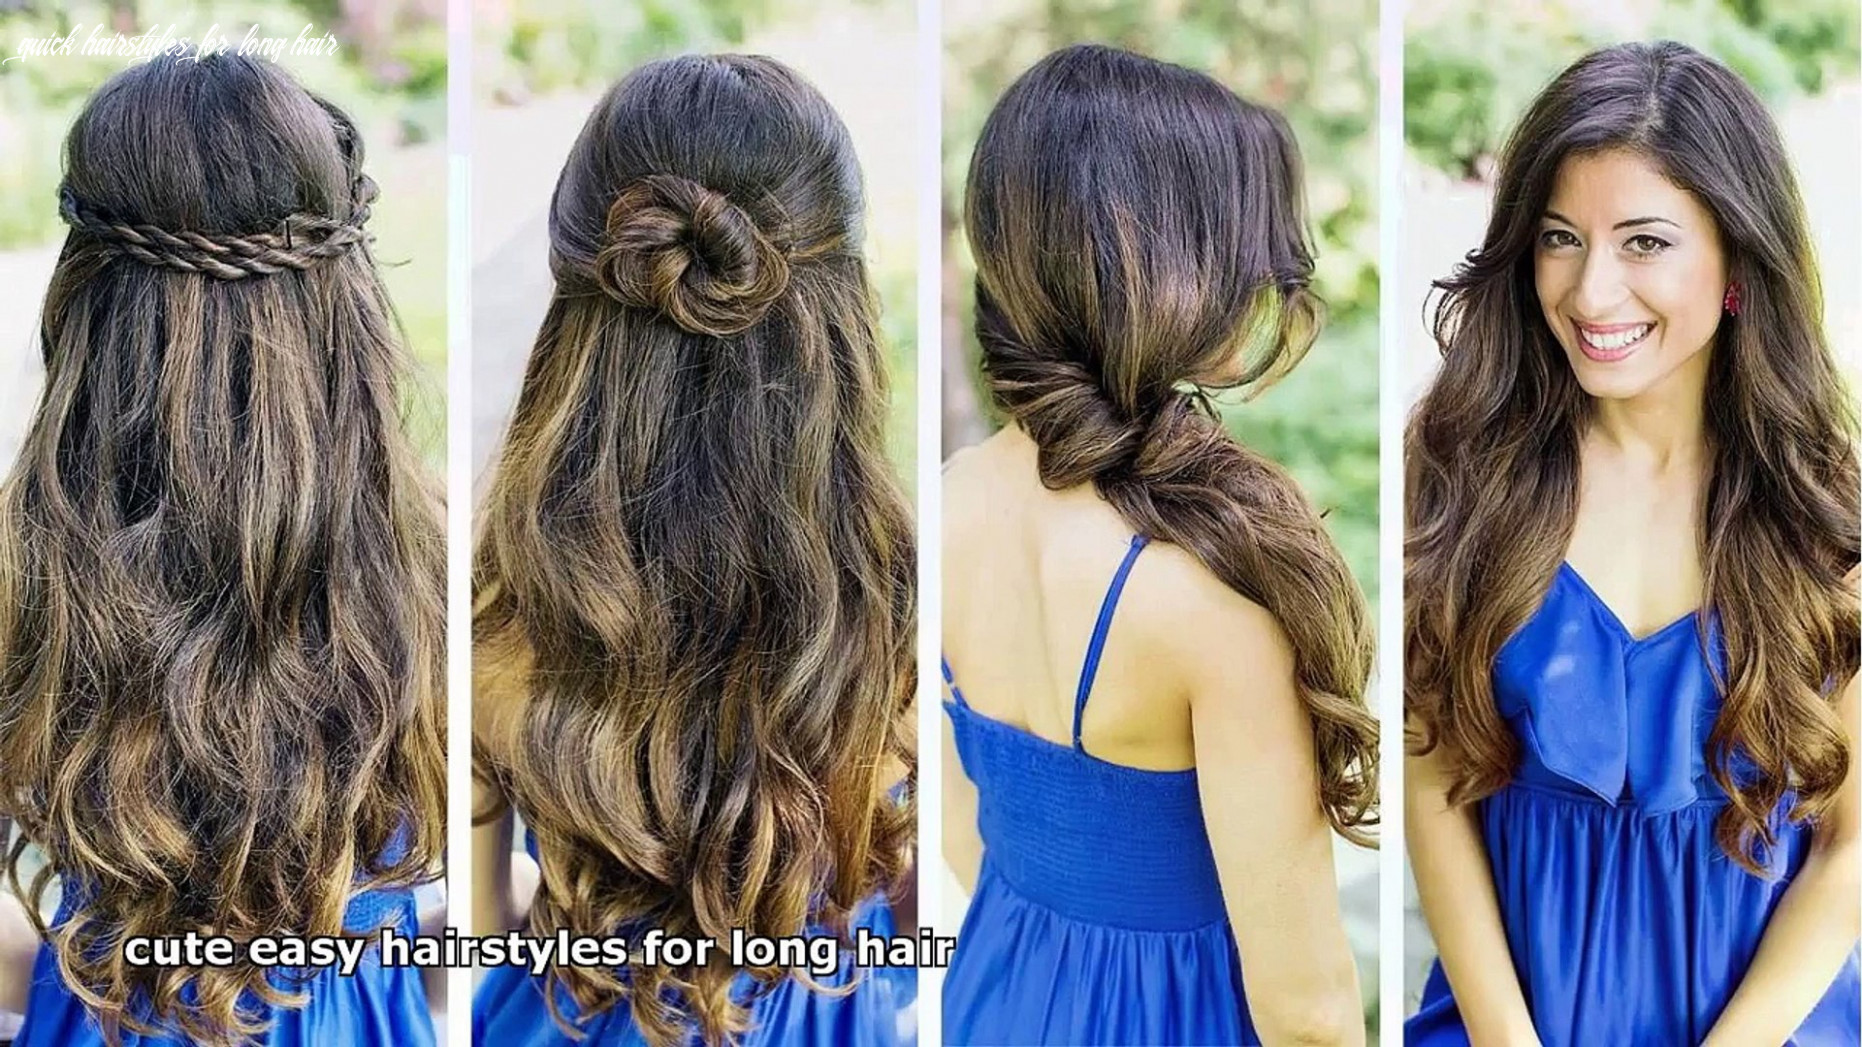 Cute easy hairstyles for long hair video dailymotion quick hairstyles for long hair